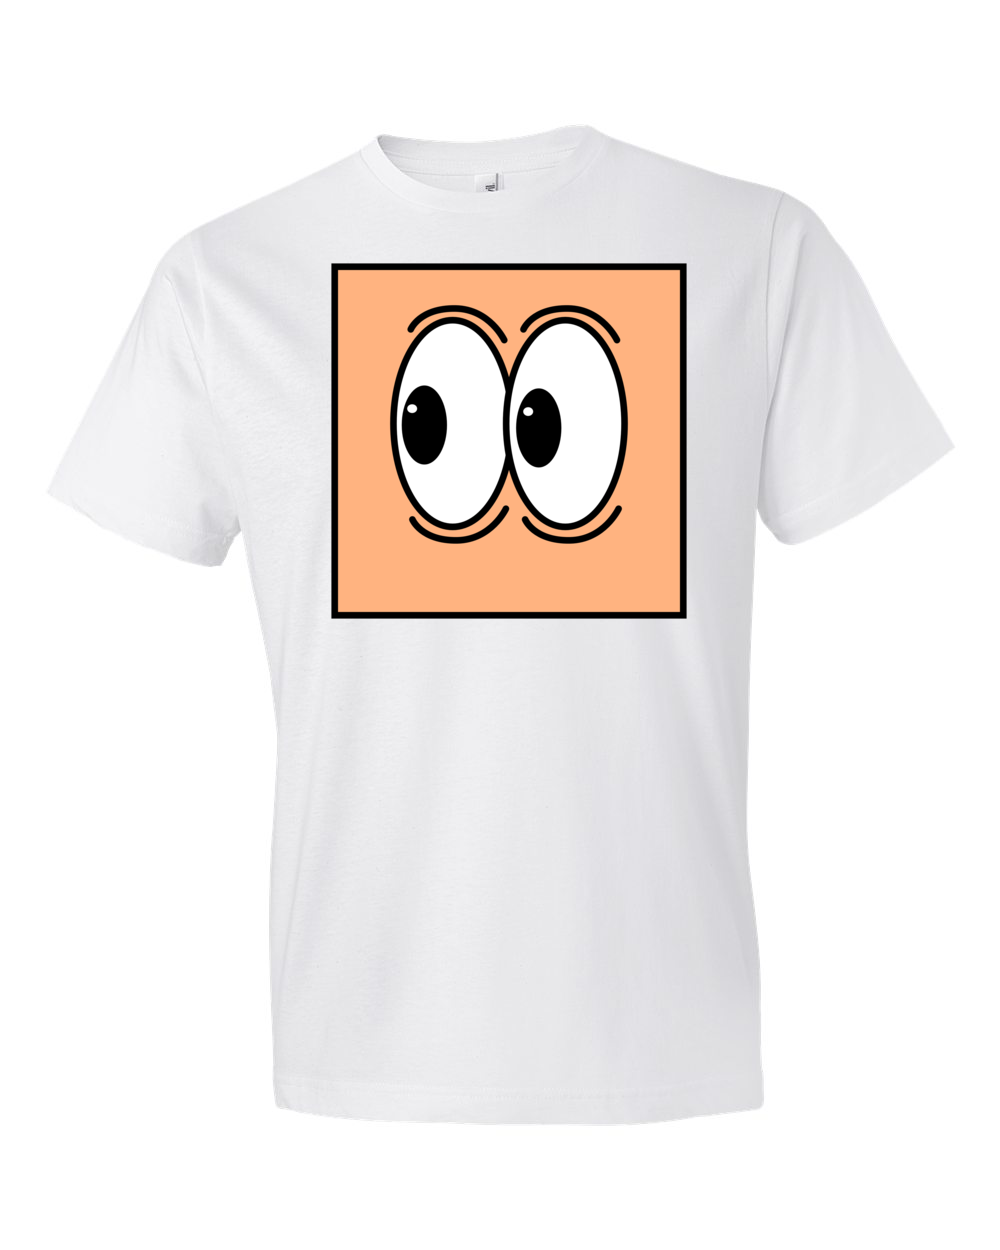 Eyes-Lightweight-Fashion-Short-Sleeve-T-Shirt-by-iTEE.com